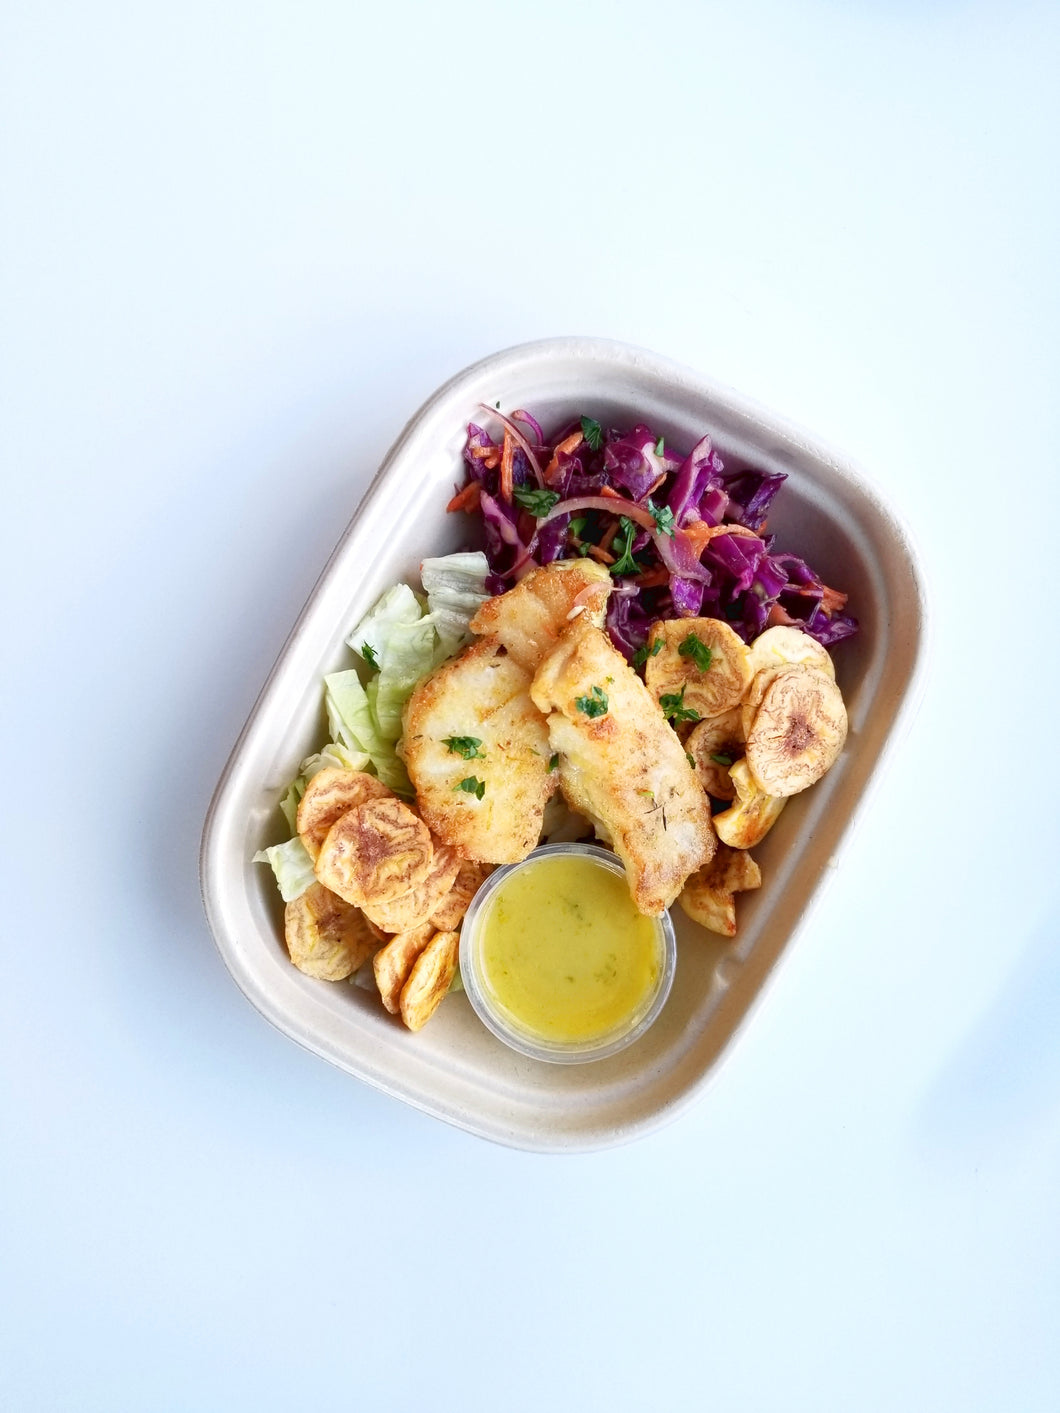 Fish Taco Salad with Red Cabbage Slaw, Roasted Plantain, Lime Vinaigrette